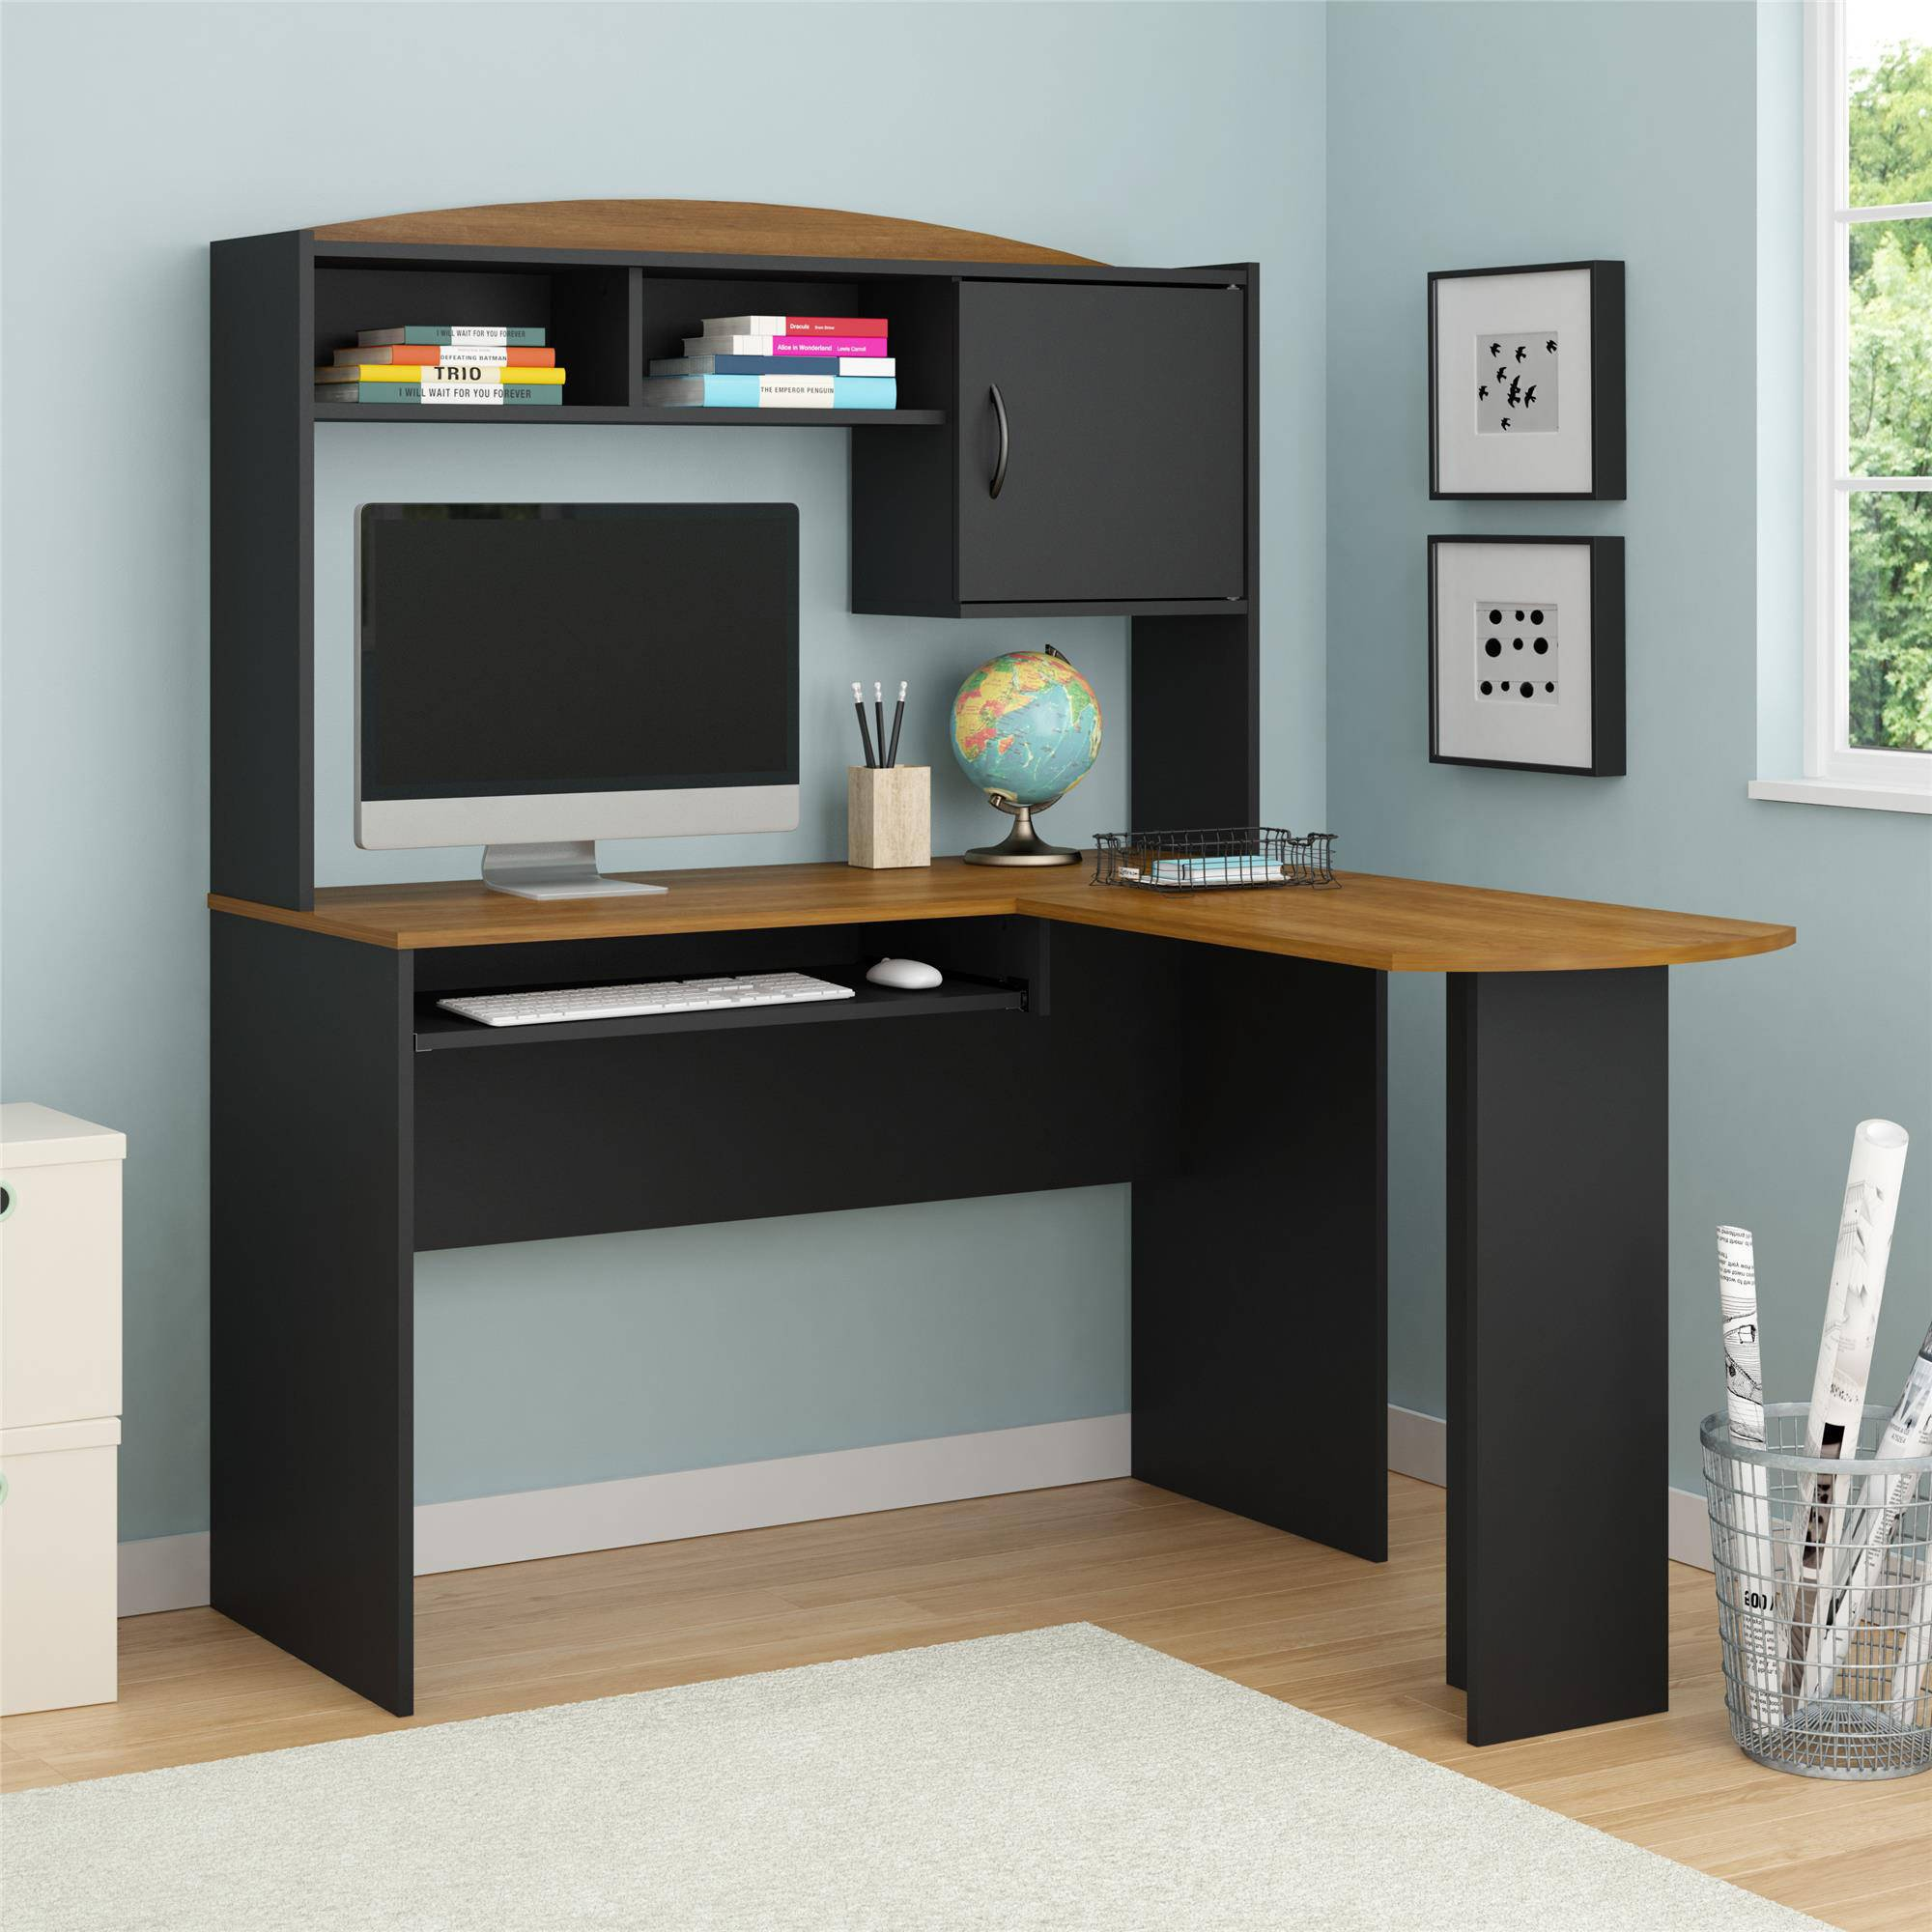 Home and Office Wooden L-Shaped Desk with Hutch; A Space Saving Corner-Table Furniture featuring multiple storages; Also Available in Multiple Finishes, H: 152.8 cm x W: 120.5 cm x D: 124.9 cm